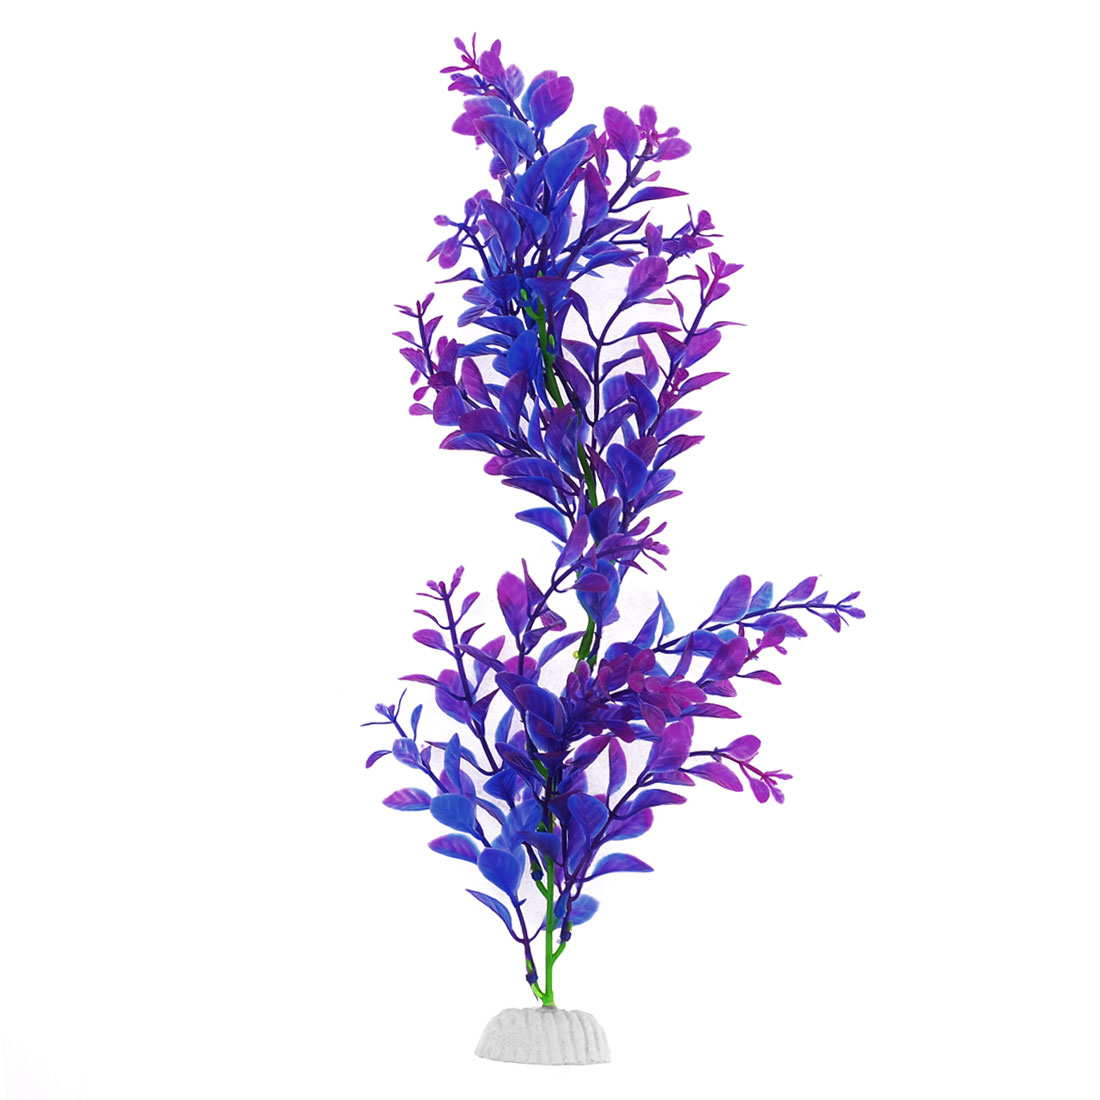 Fish Tank Aquatic Ceramic Base Plant Grass Underwater Decor Purple Blue 30cm